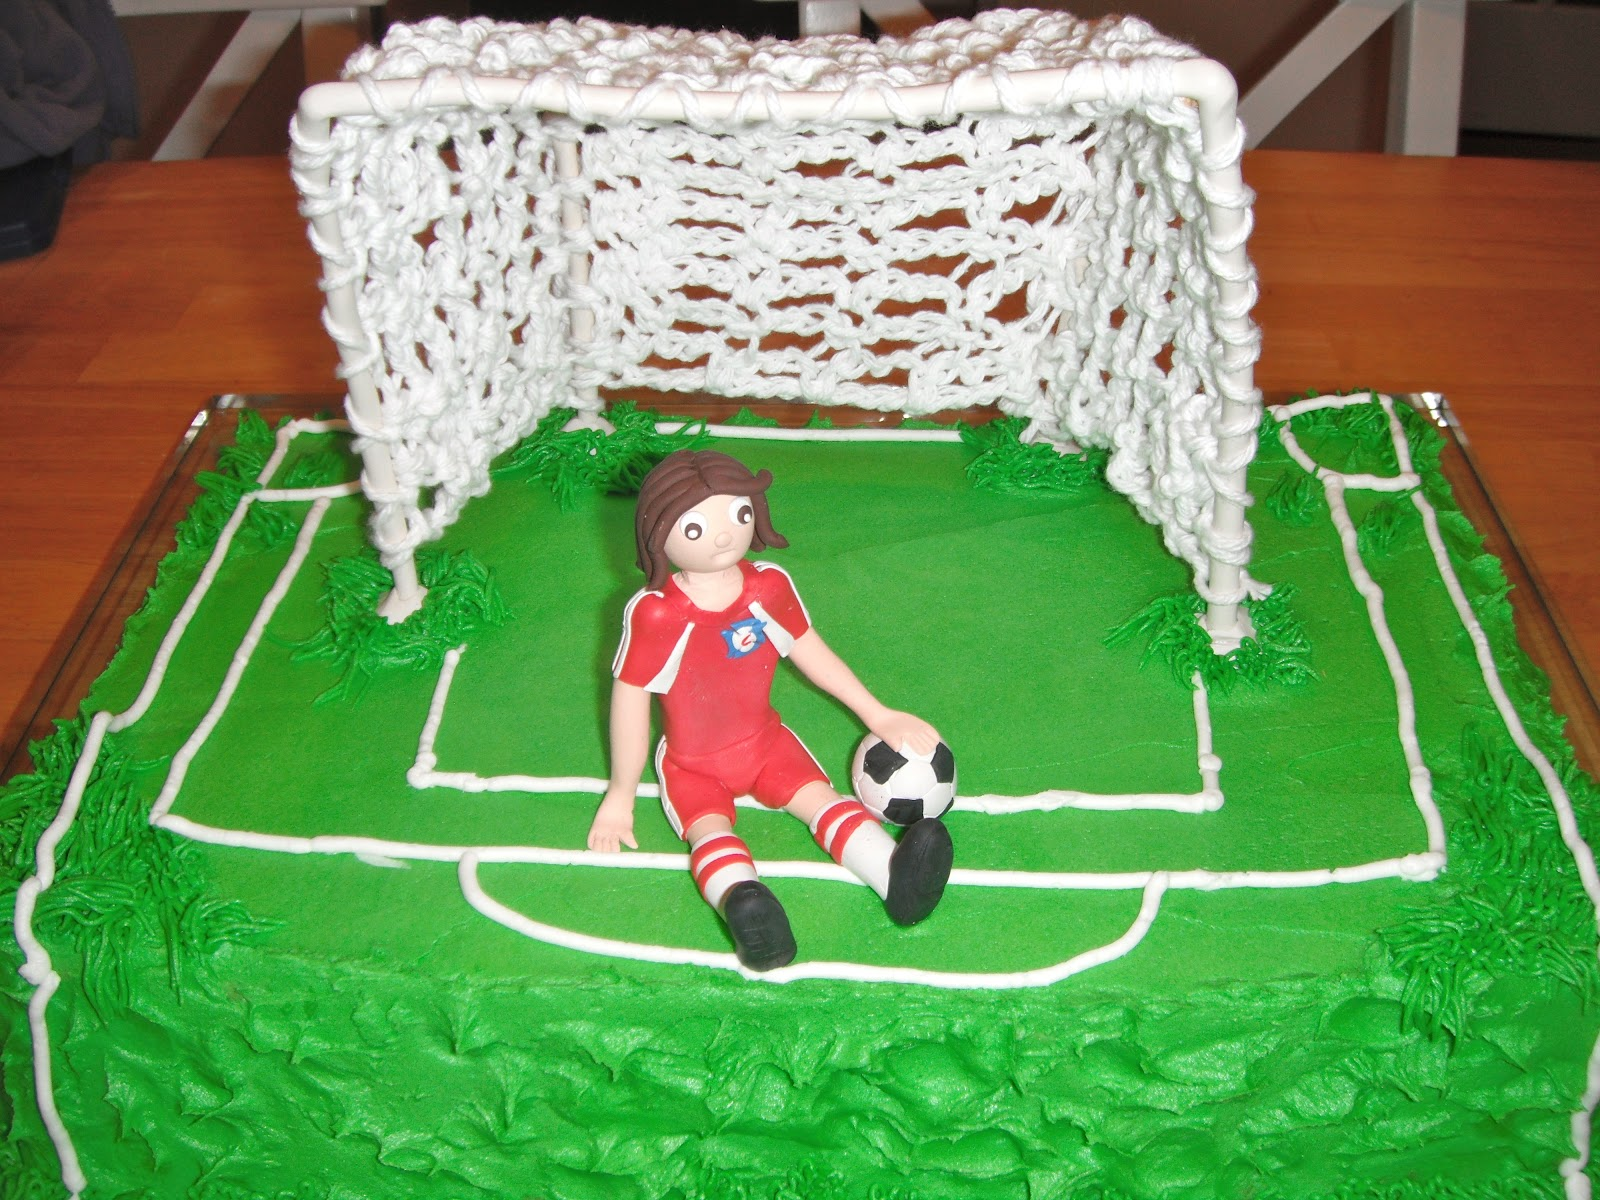 How to Make a Soccer Goal Post Cake PARTY